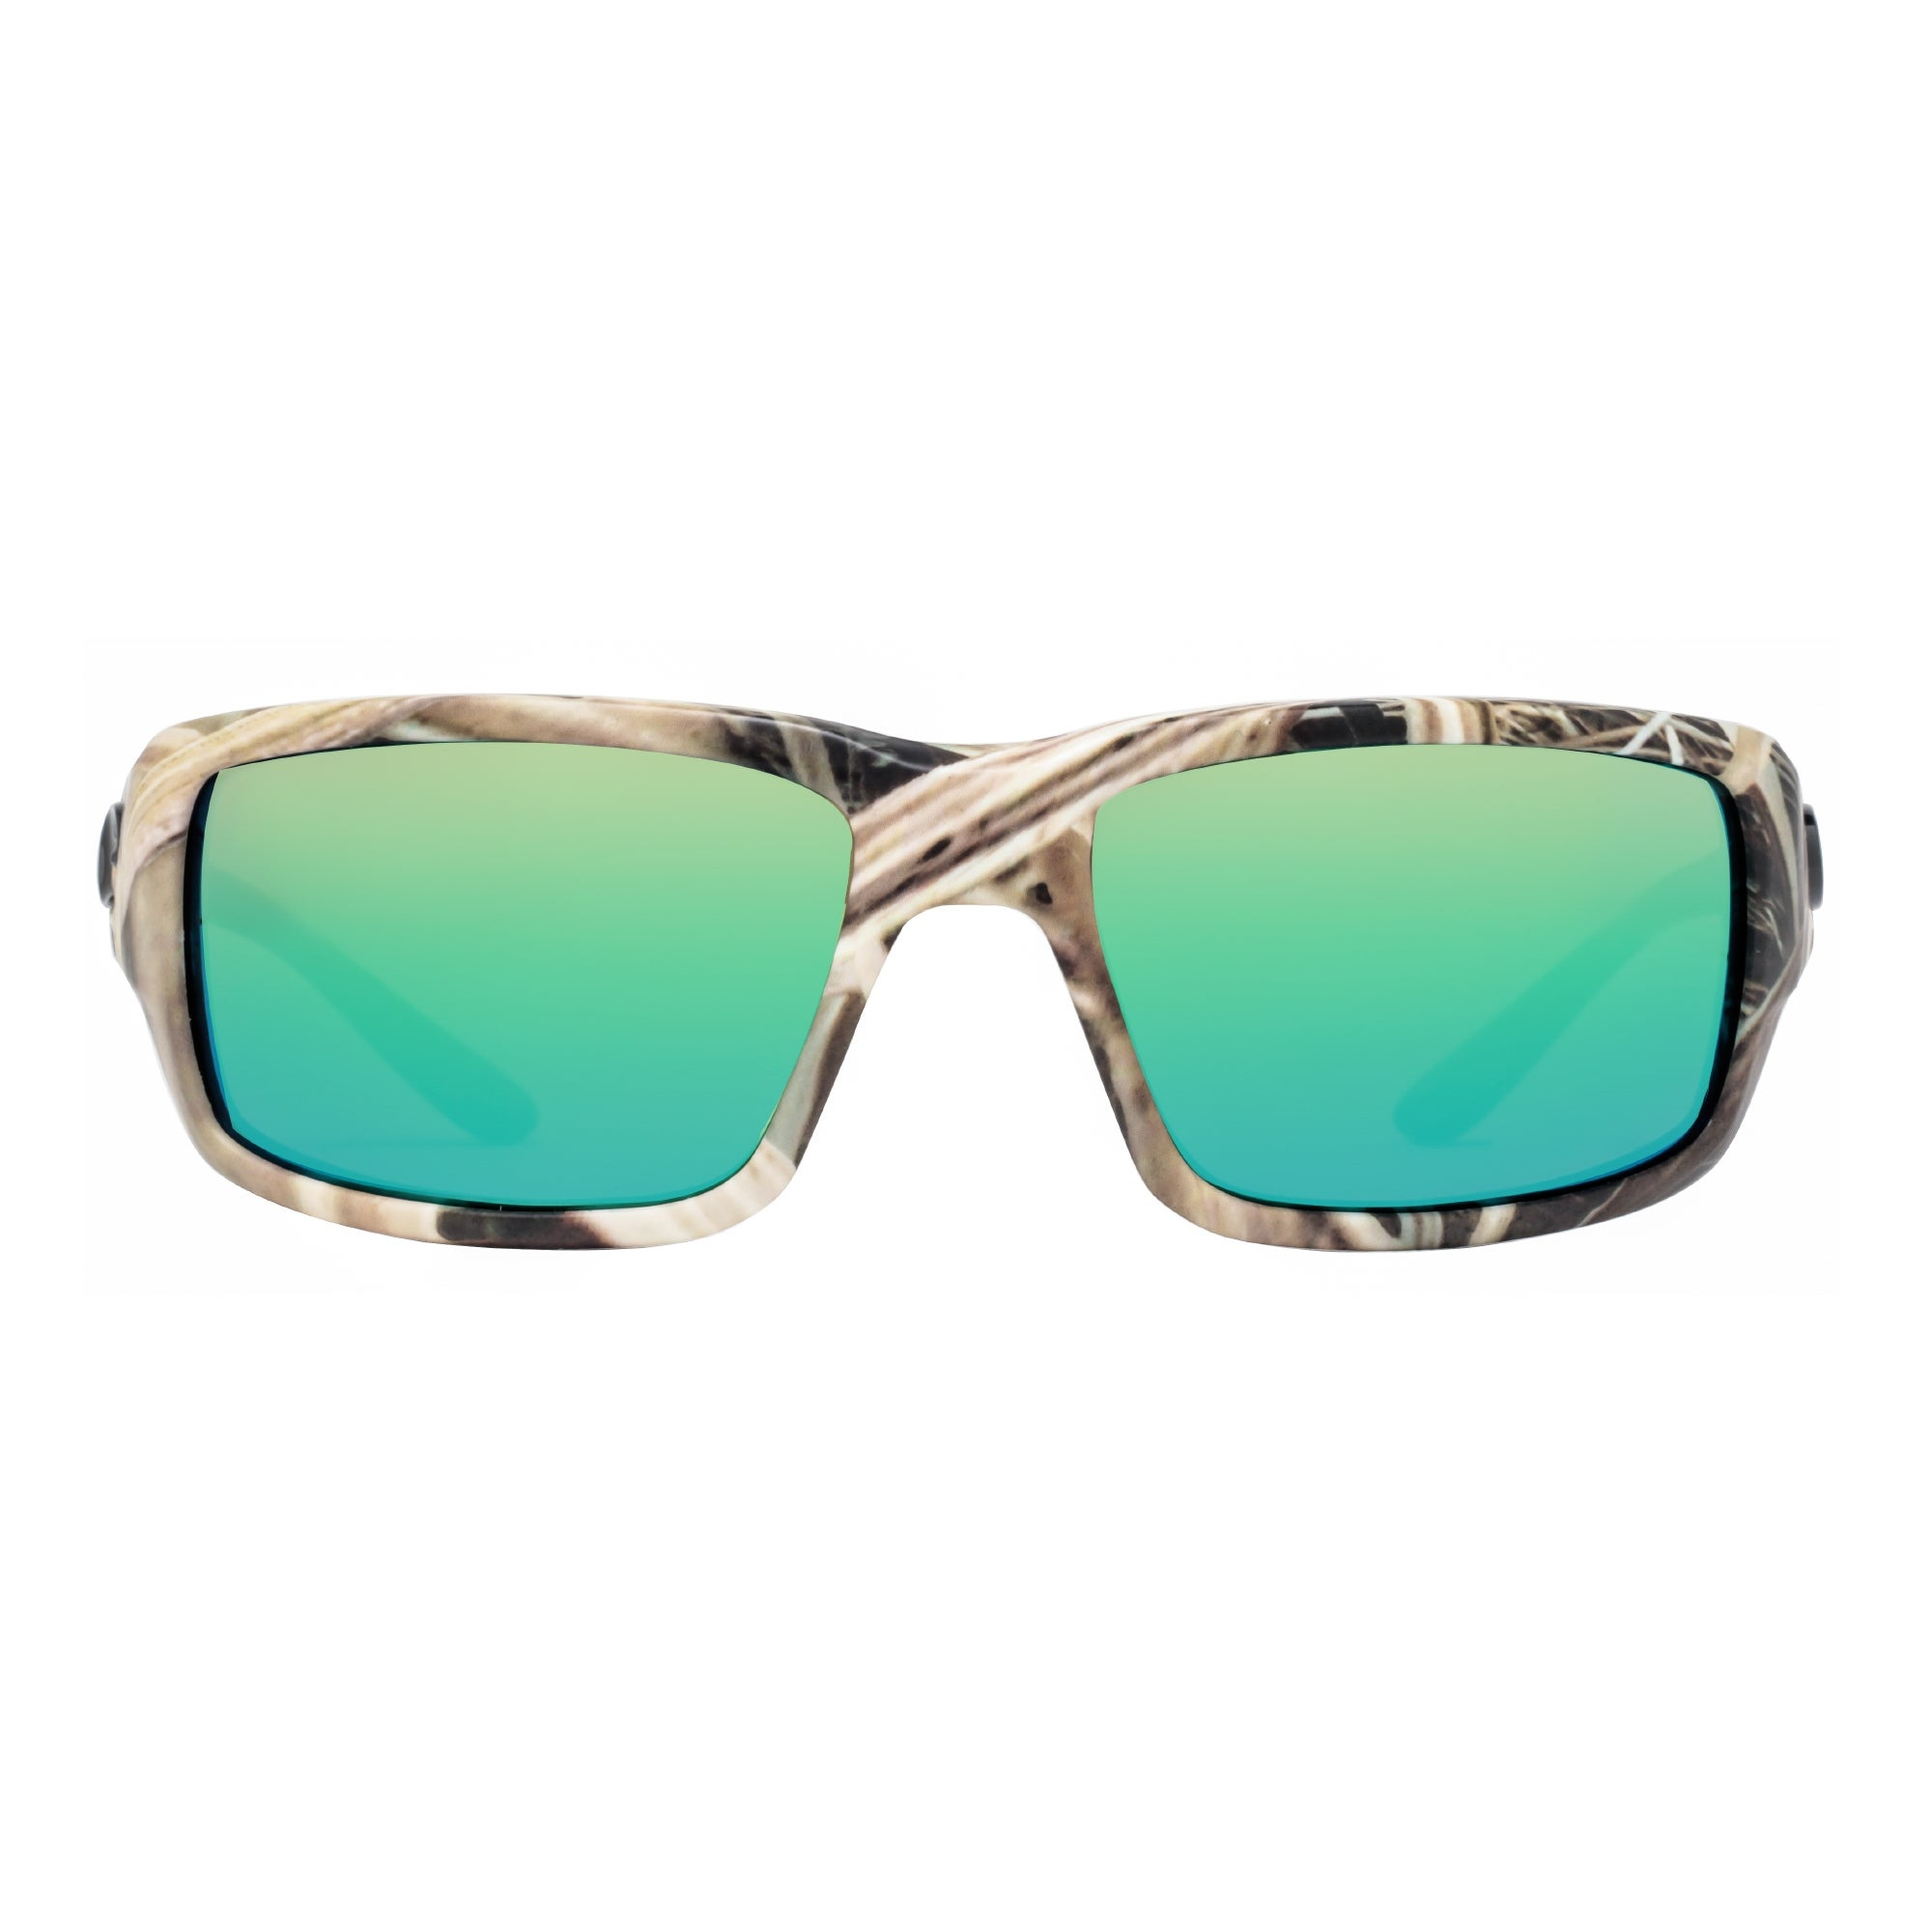 f82bd81a9 Shop Costa Del Mar Fantail TF65OGMP Mossy Oak Camo 580P Green Mirror Wrap  Sunglasses - mossy oak grass camouflage - 59mm-18mm-120mm - Free Shipping  Today ...